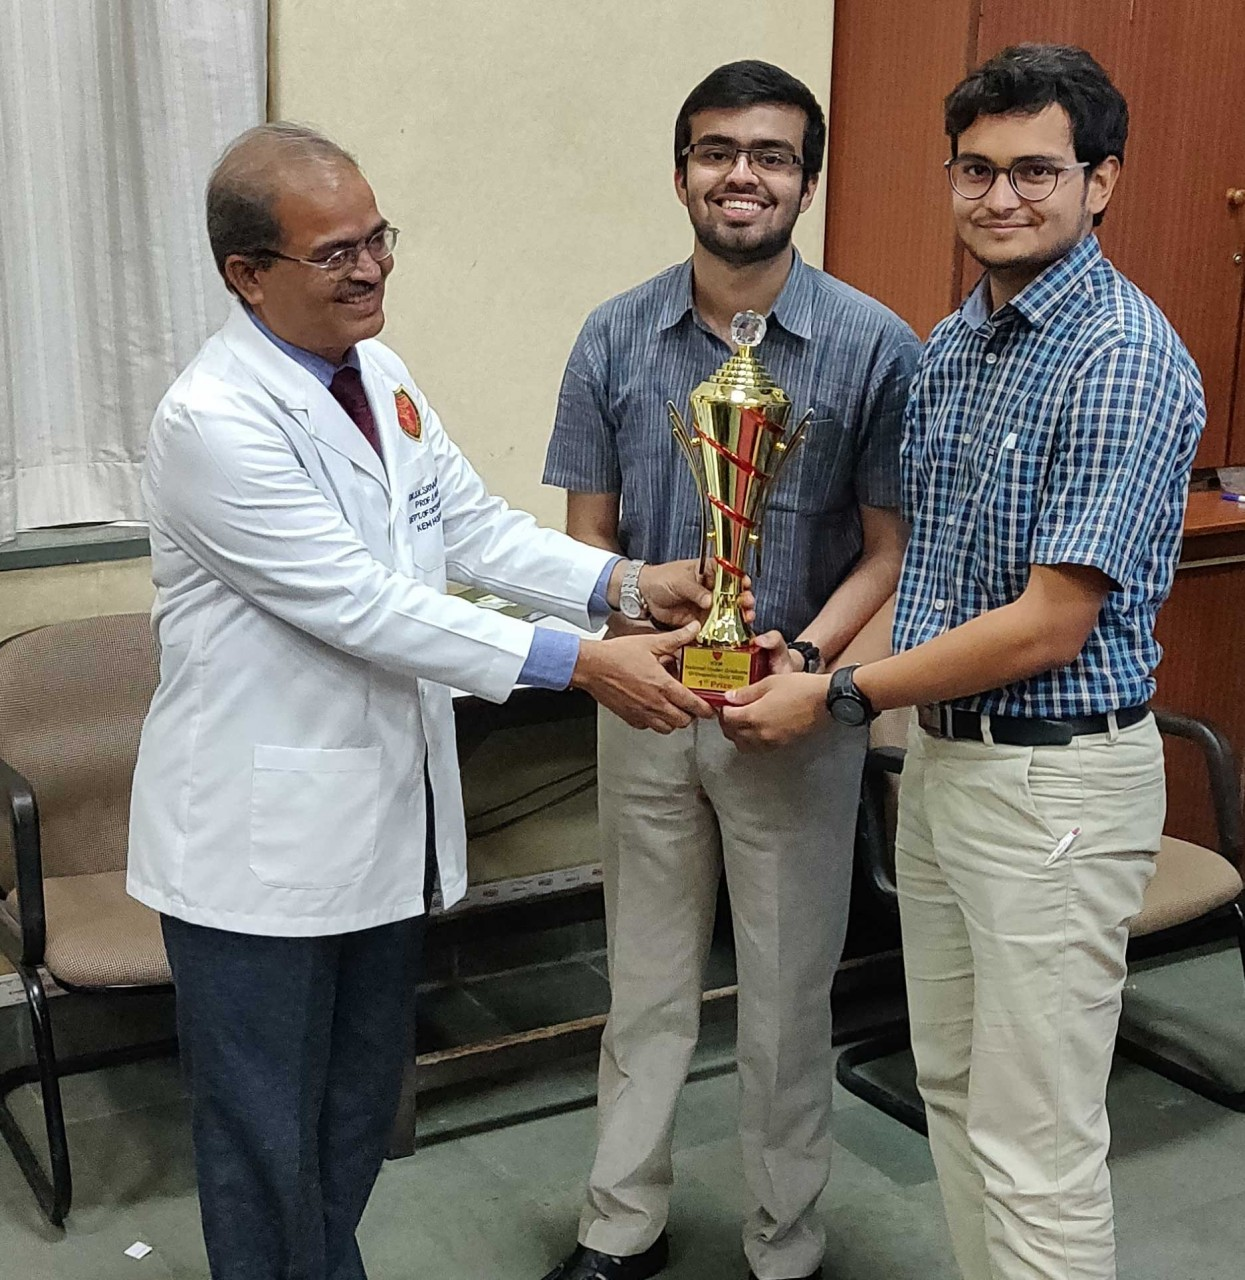 MGIMS secures first position in National Orthopedics quiz